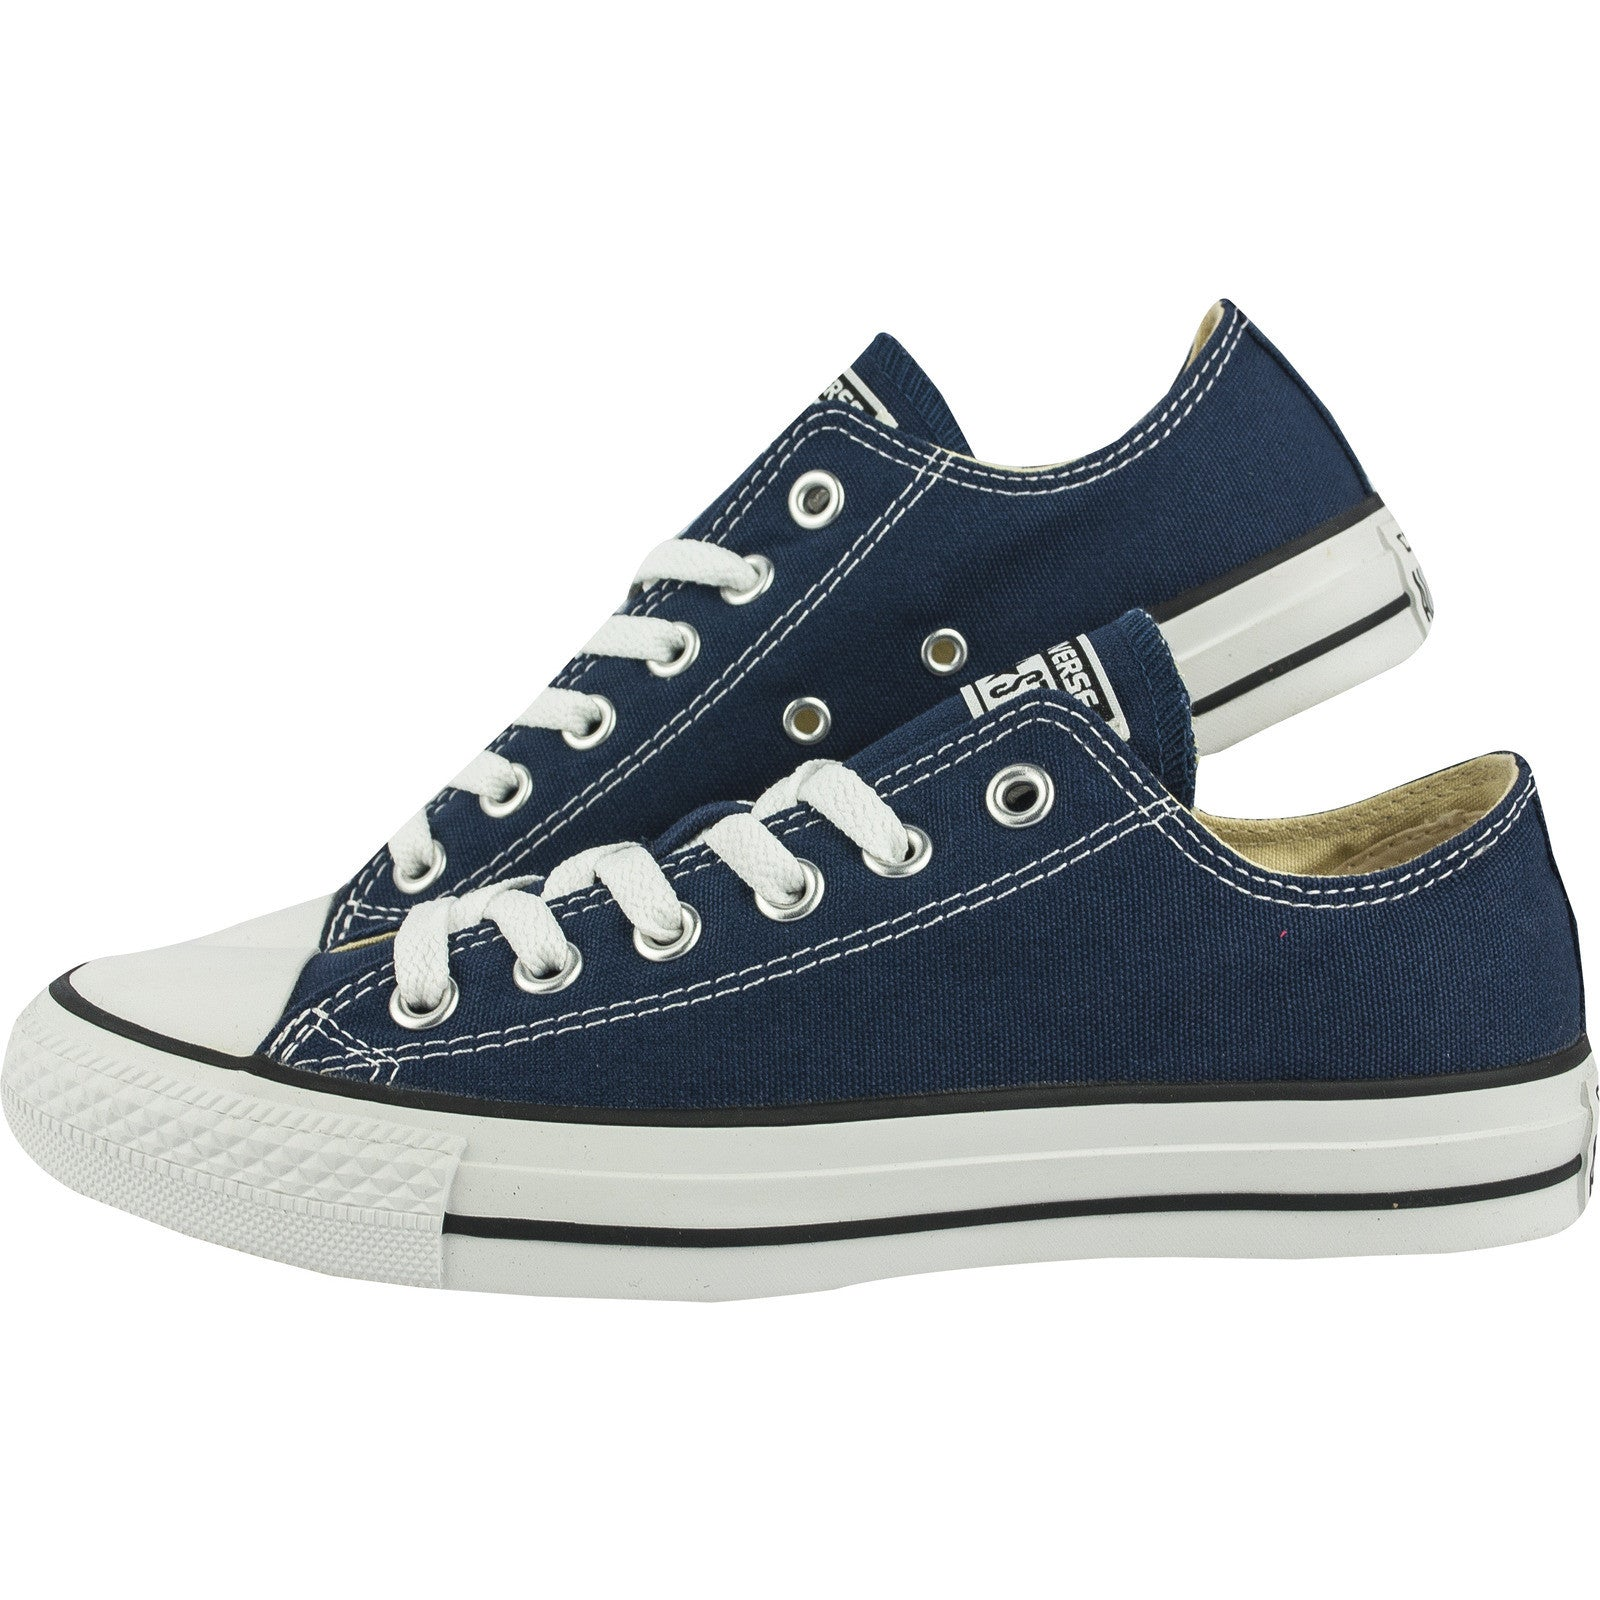 da78bafbfd77 Converse Classic Chuck Taylor All Star Navy Blue Low Tops M9697C Sneaker Men  Women ...